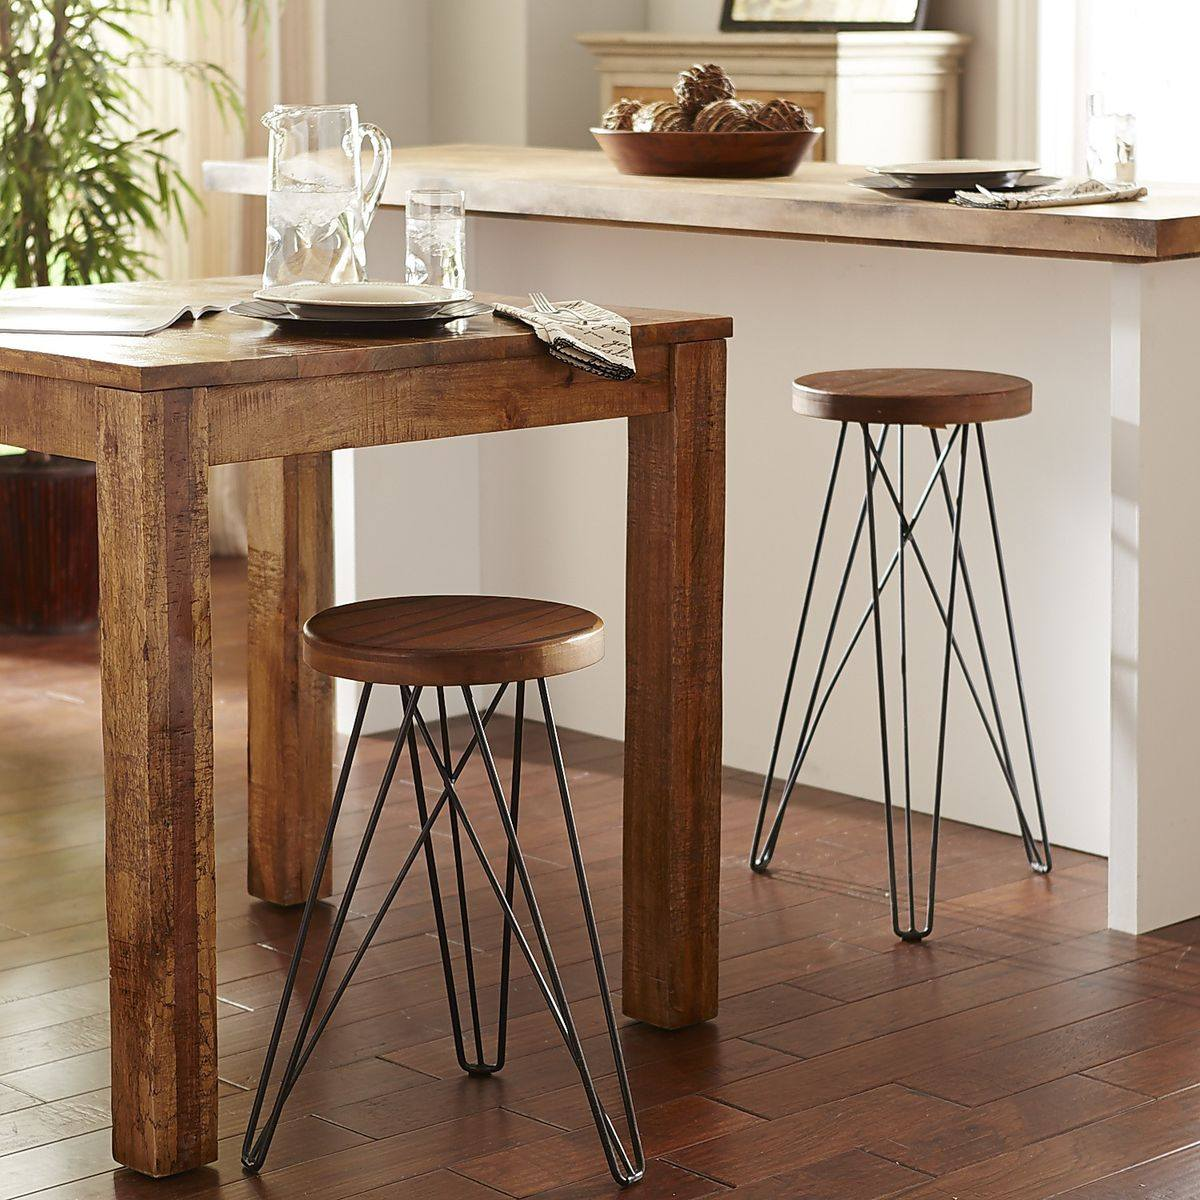 Super Furniture Finds Cheers To These Seven Budget Friendly Bar Short Links Chair Design For Home Short Linksinfo